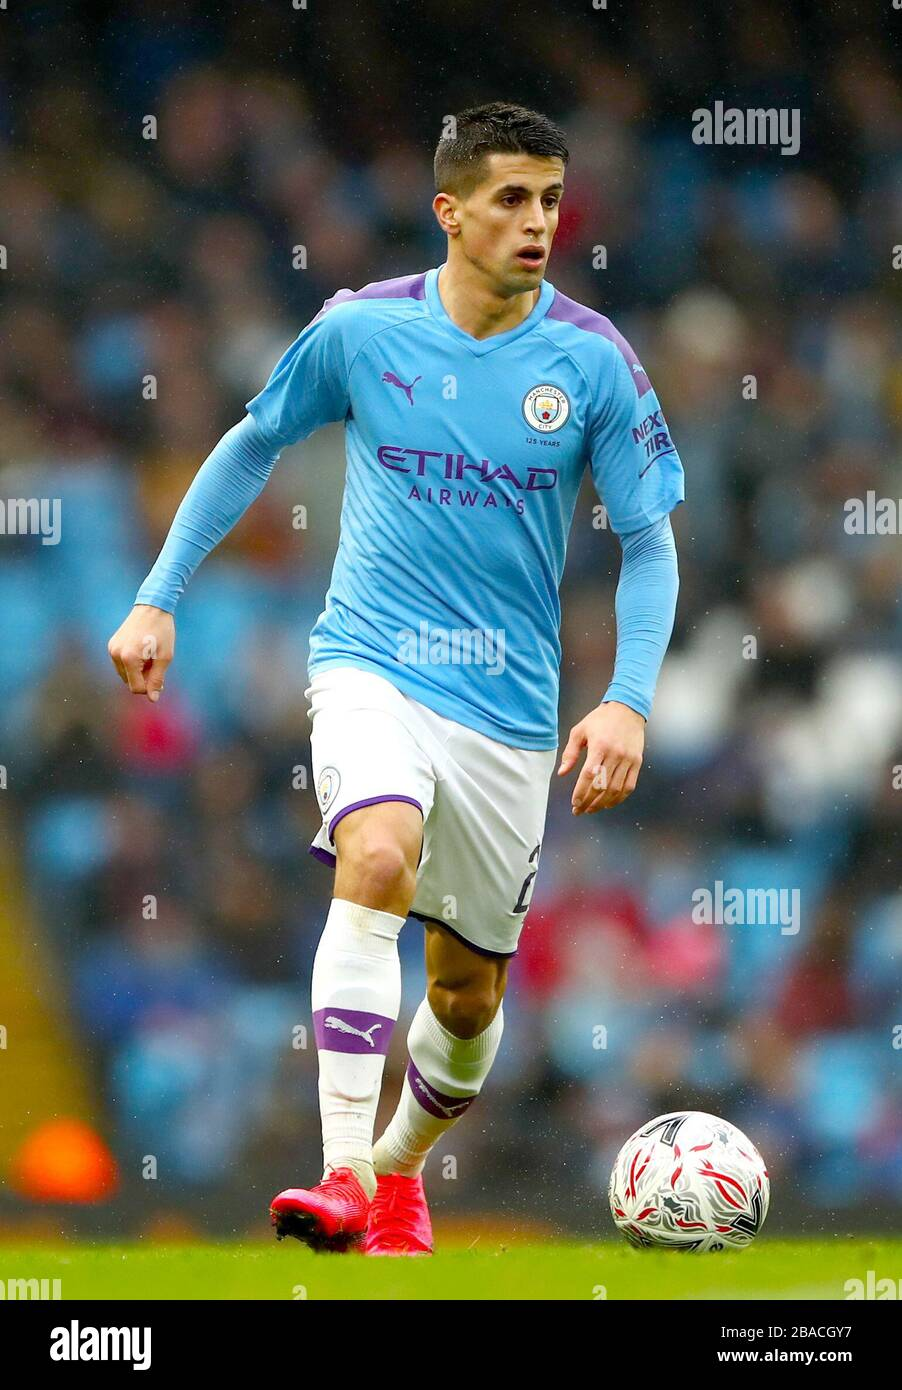 Joao Cancelo High Resolution Stock Photography And Images Alamy